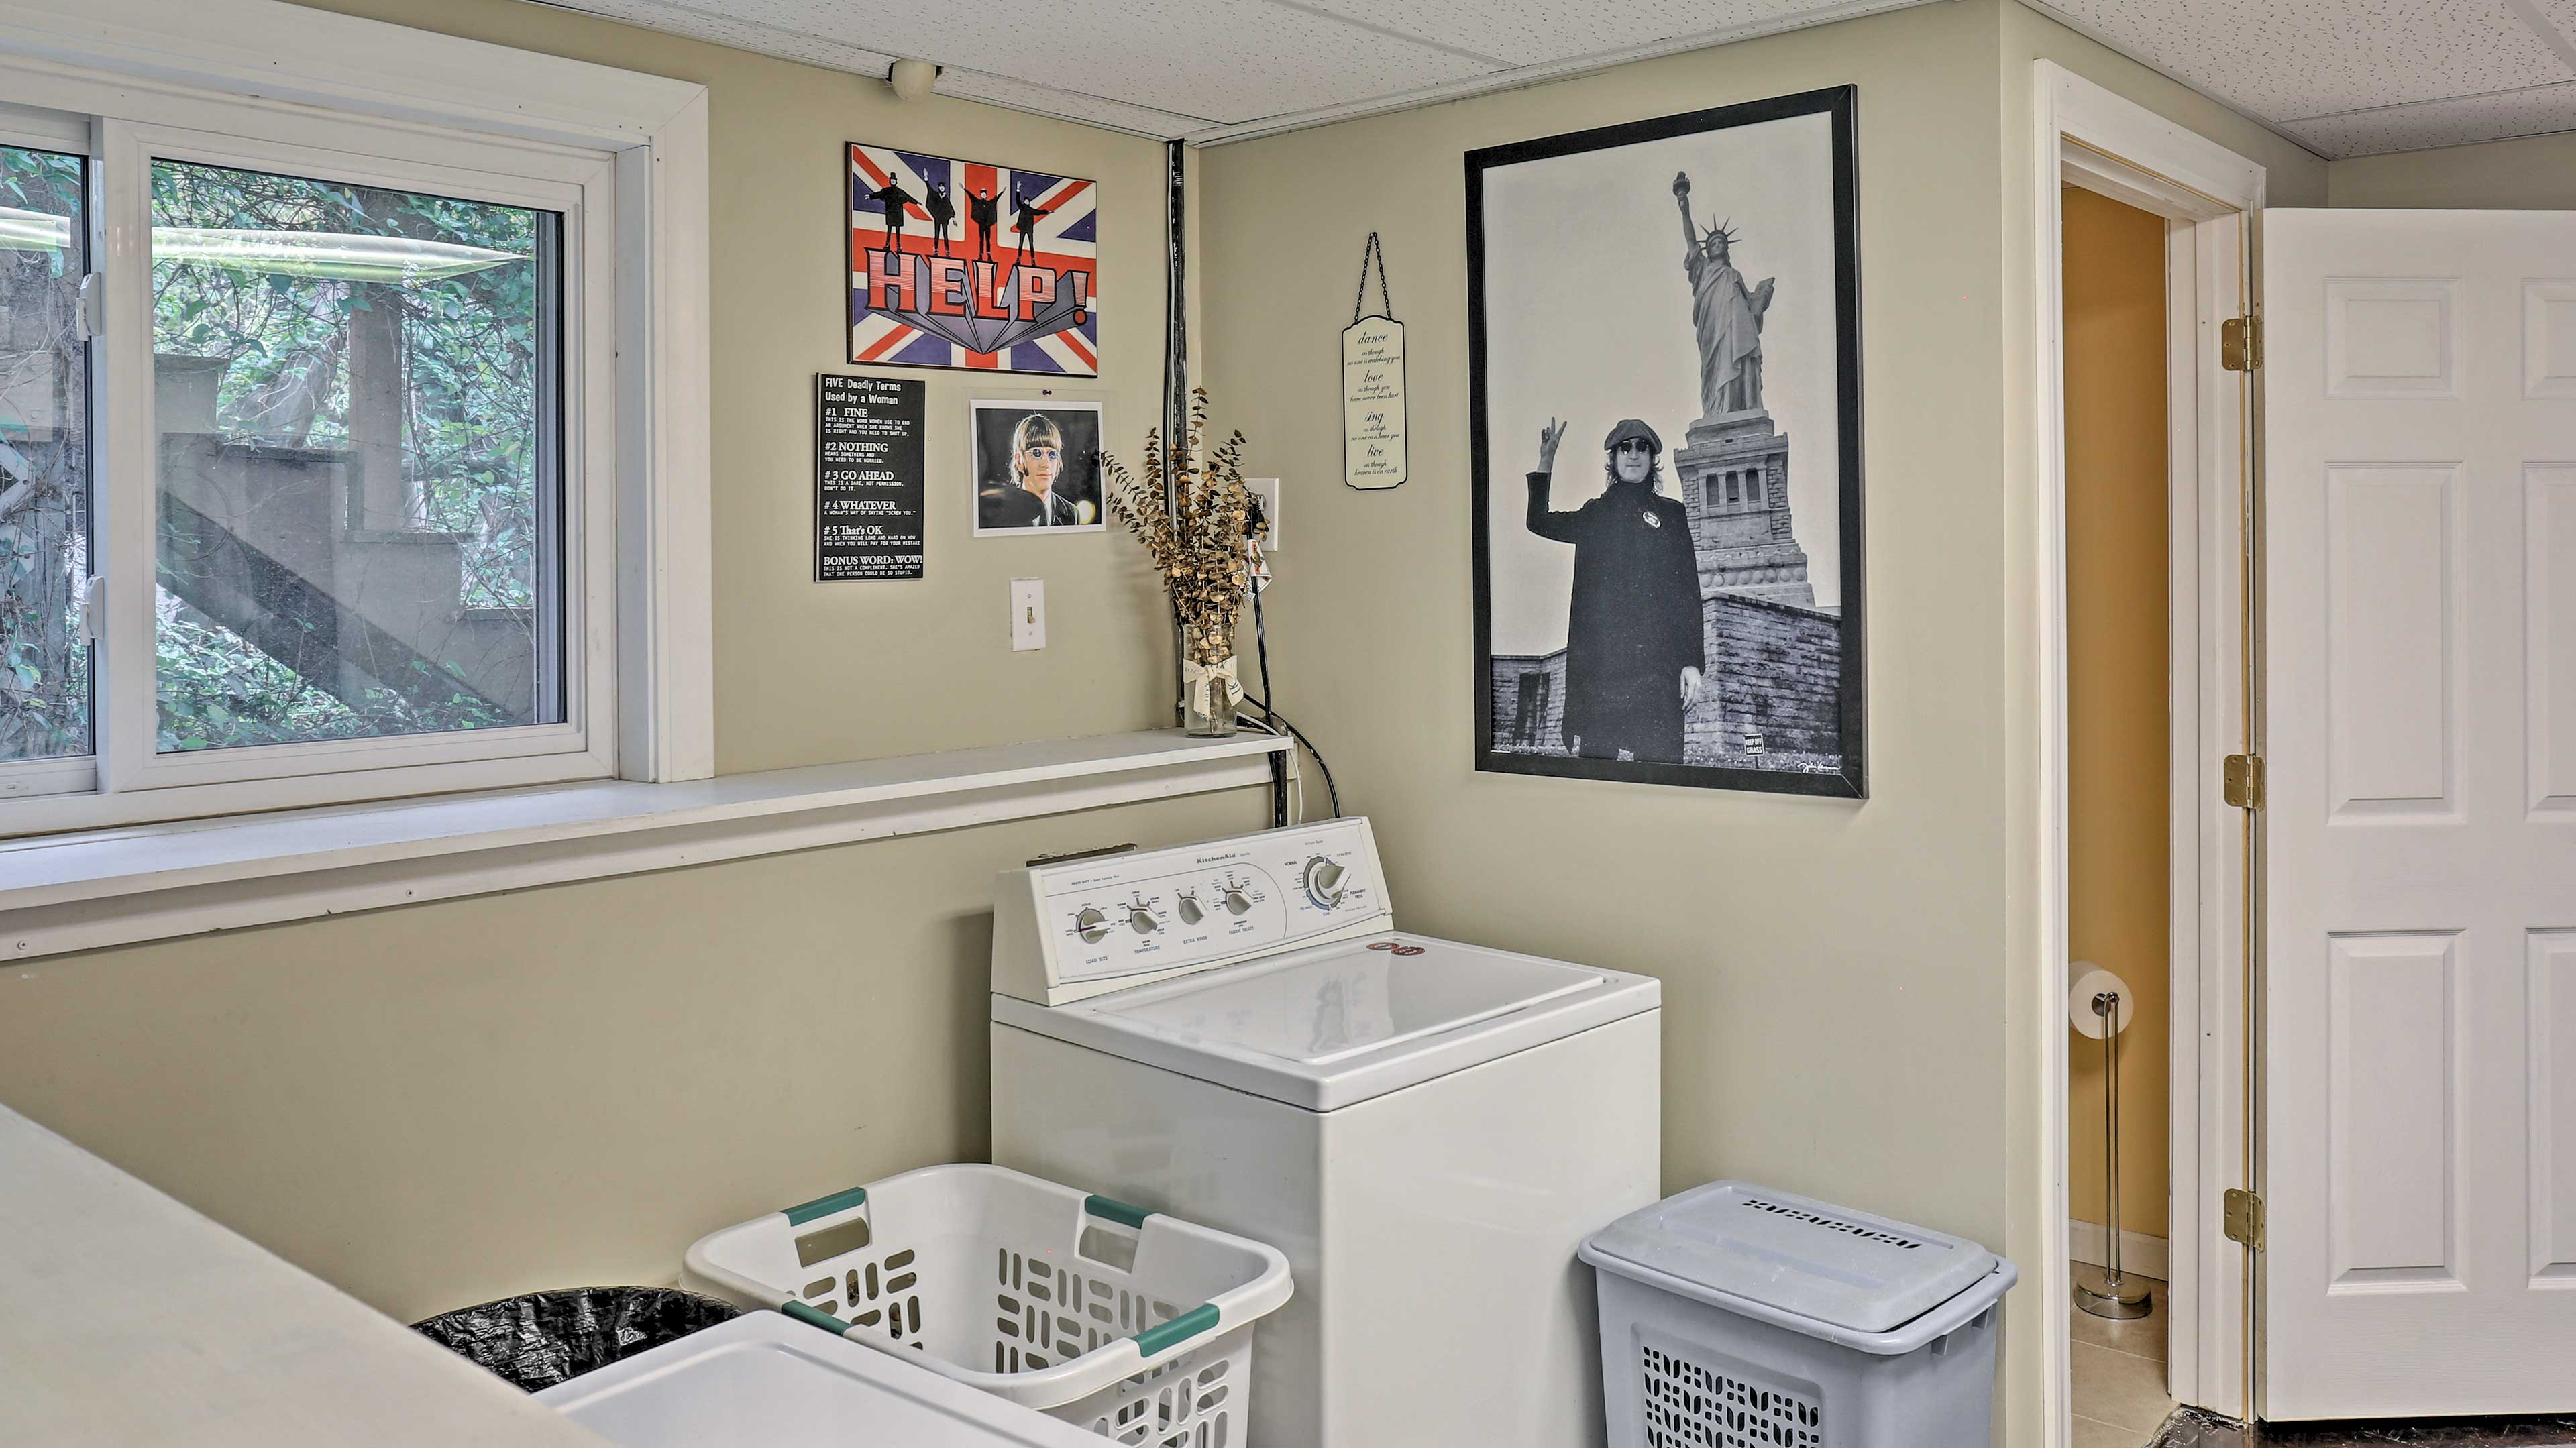 Keep your clothes fresh with the laundry machines.